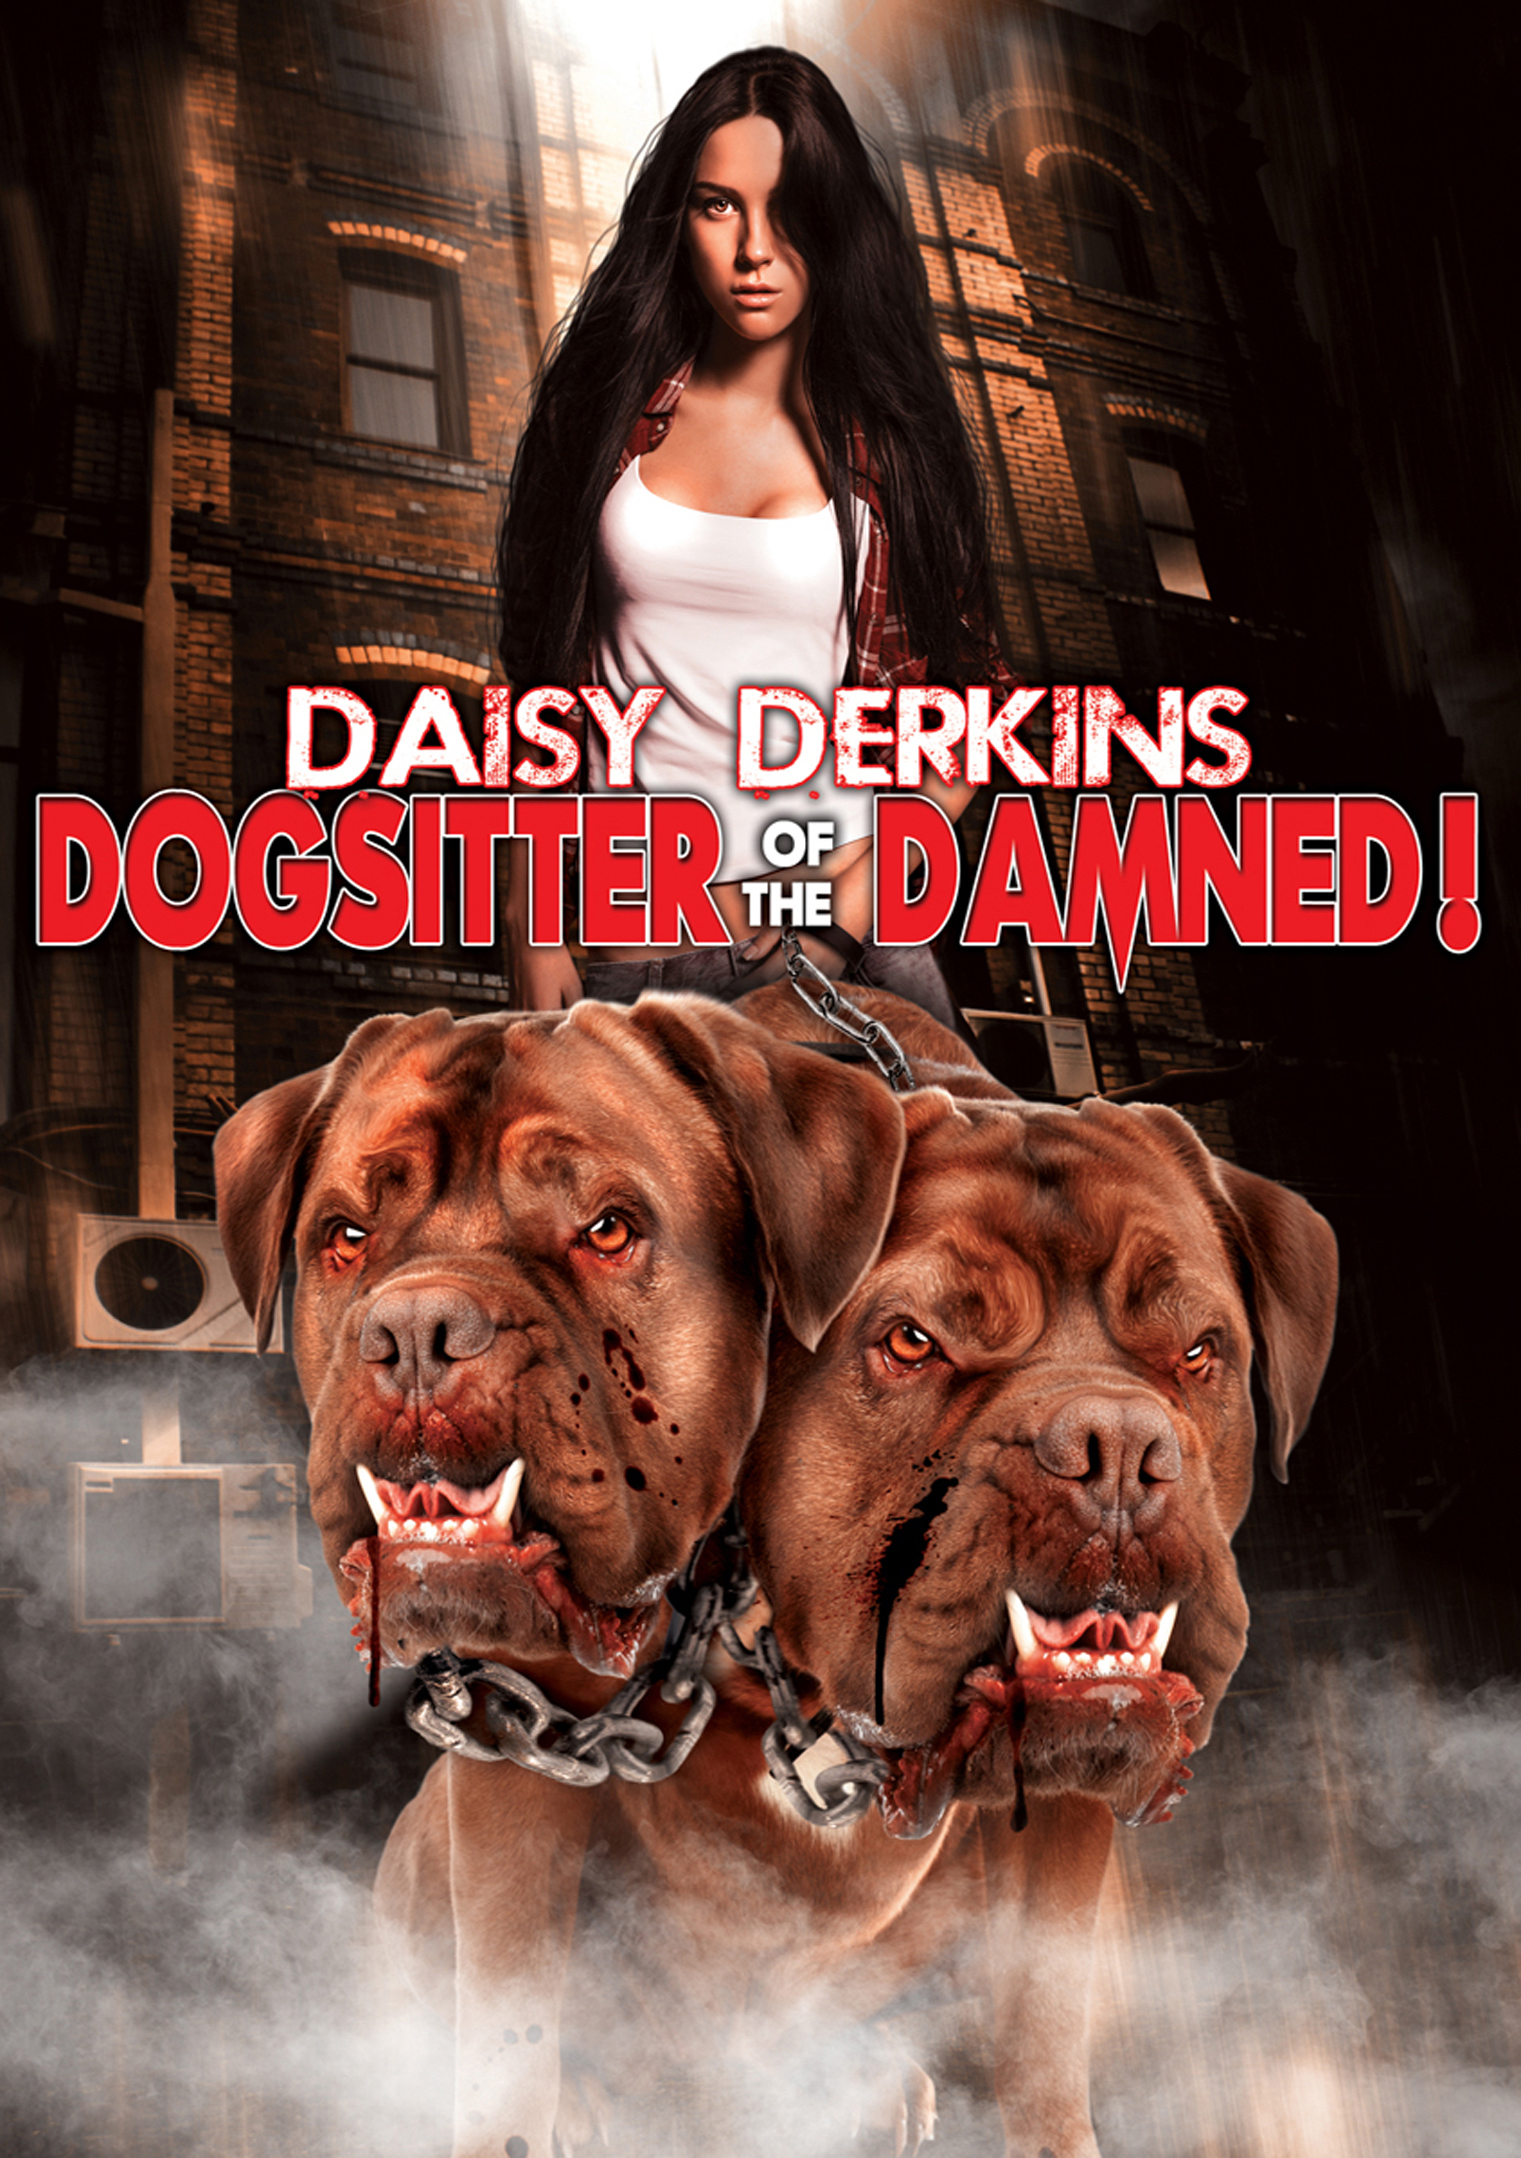 Daisy Derkins: Dog Sitter of the Damned!